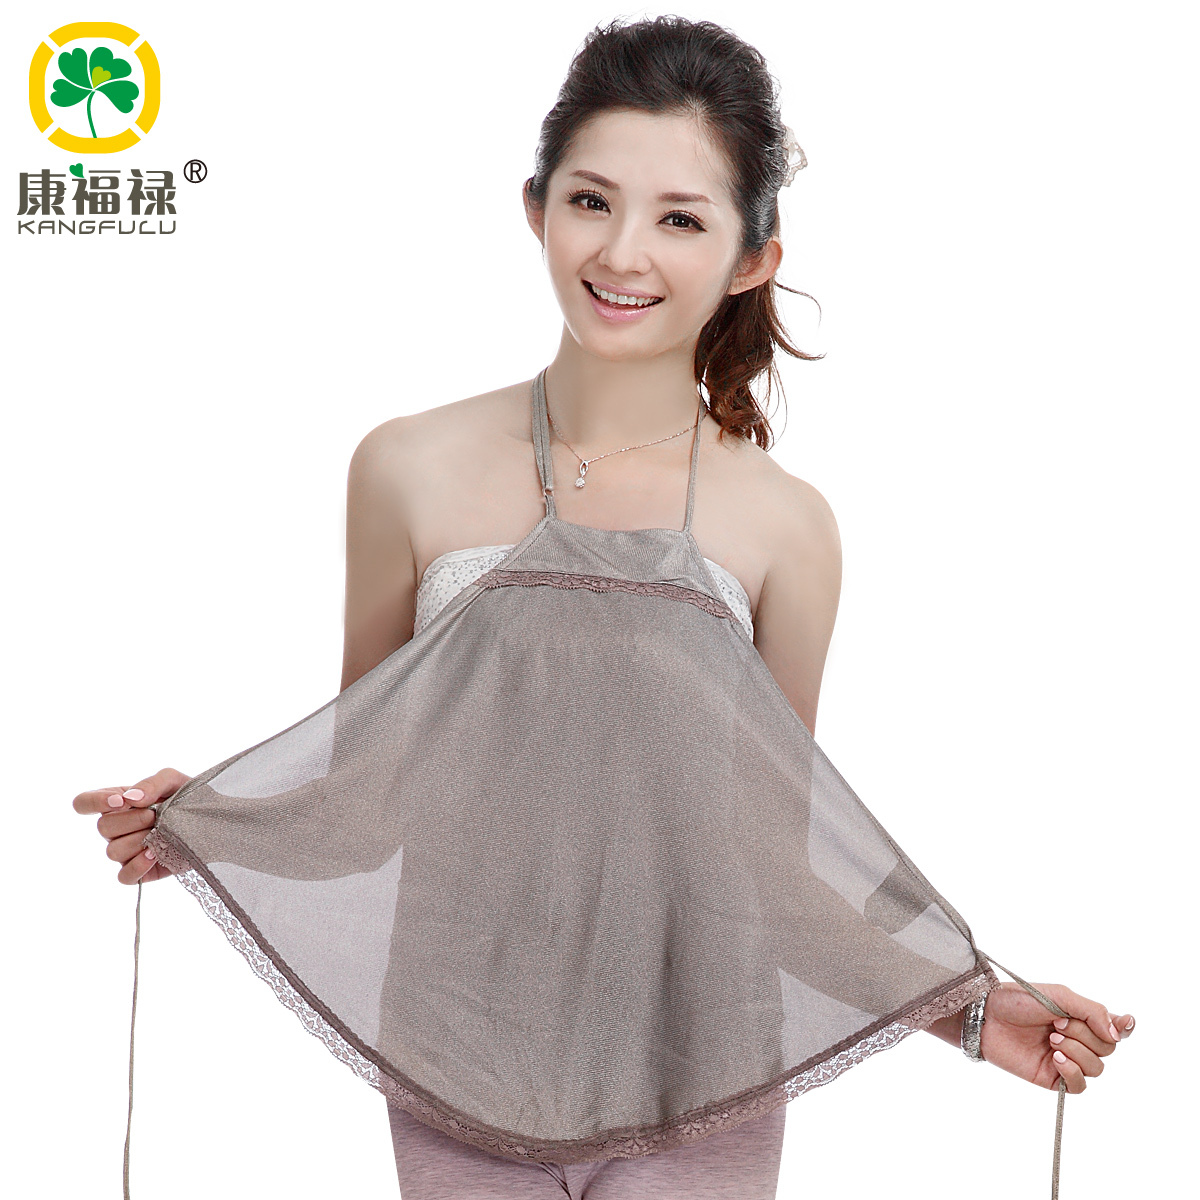 Radiation-resistant bellyached silver fiber maternity radiation-resistant bellyached radiation-resistant maternity clothing